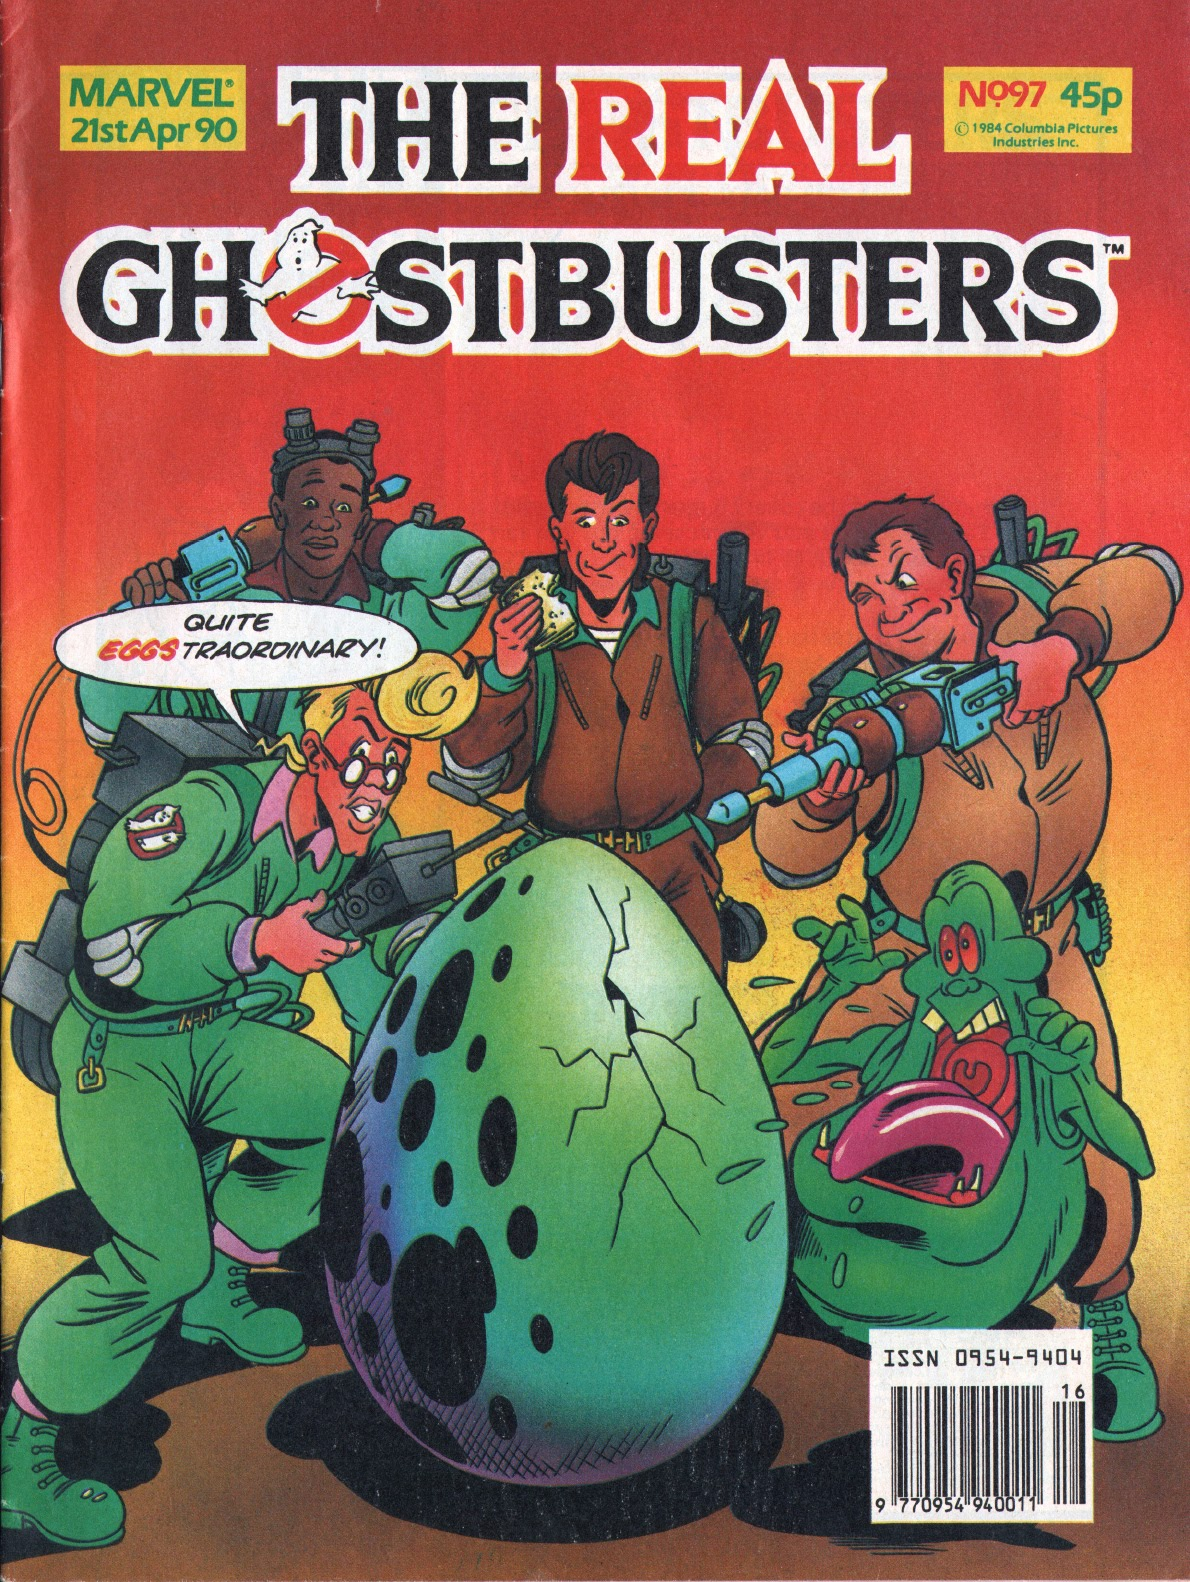 The Real Ghostbusters 97 Page 1